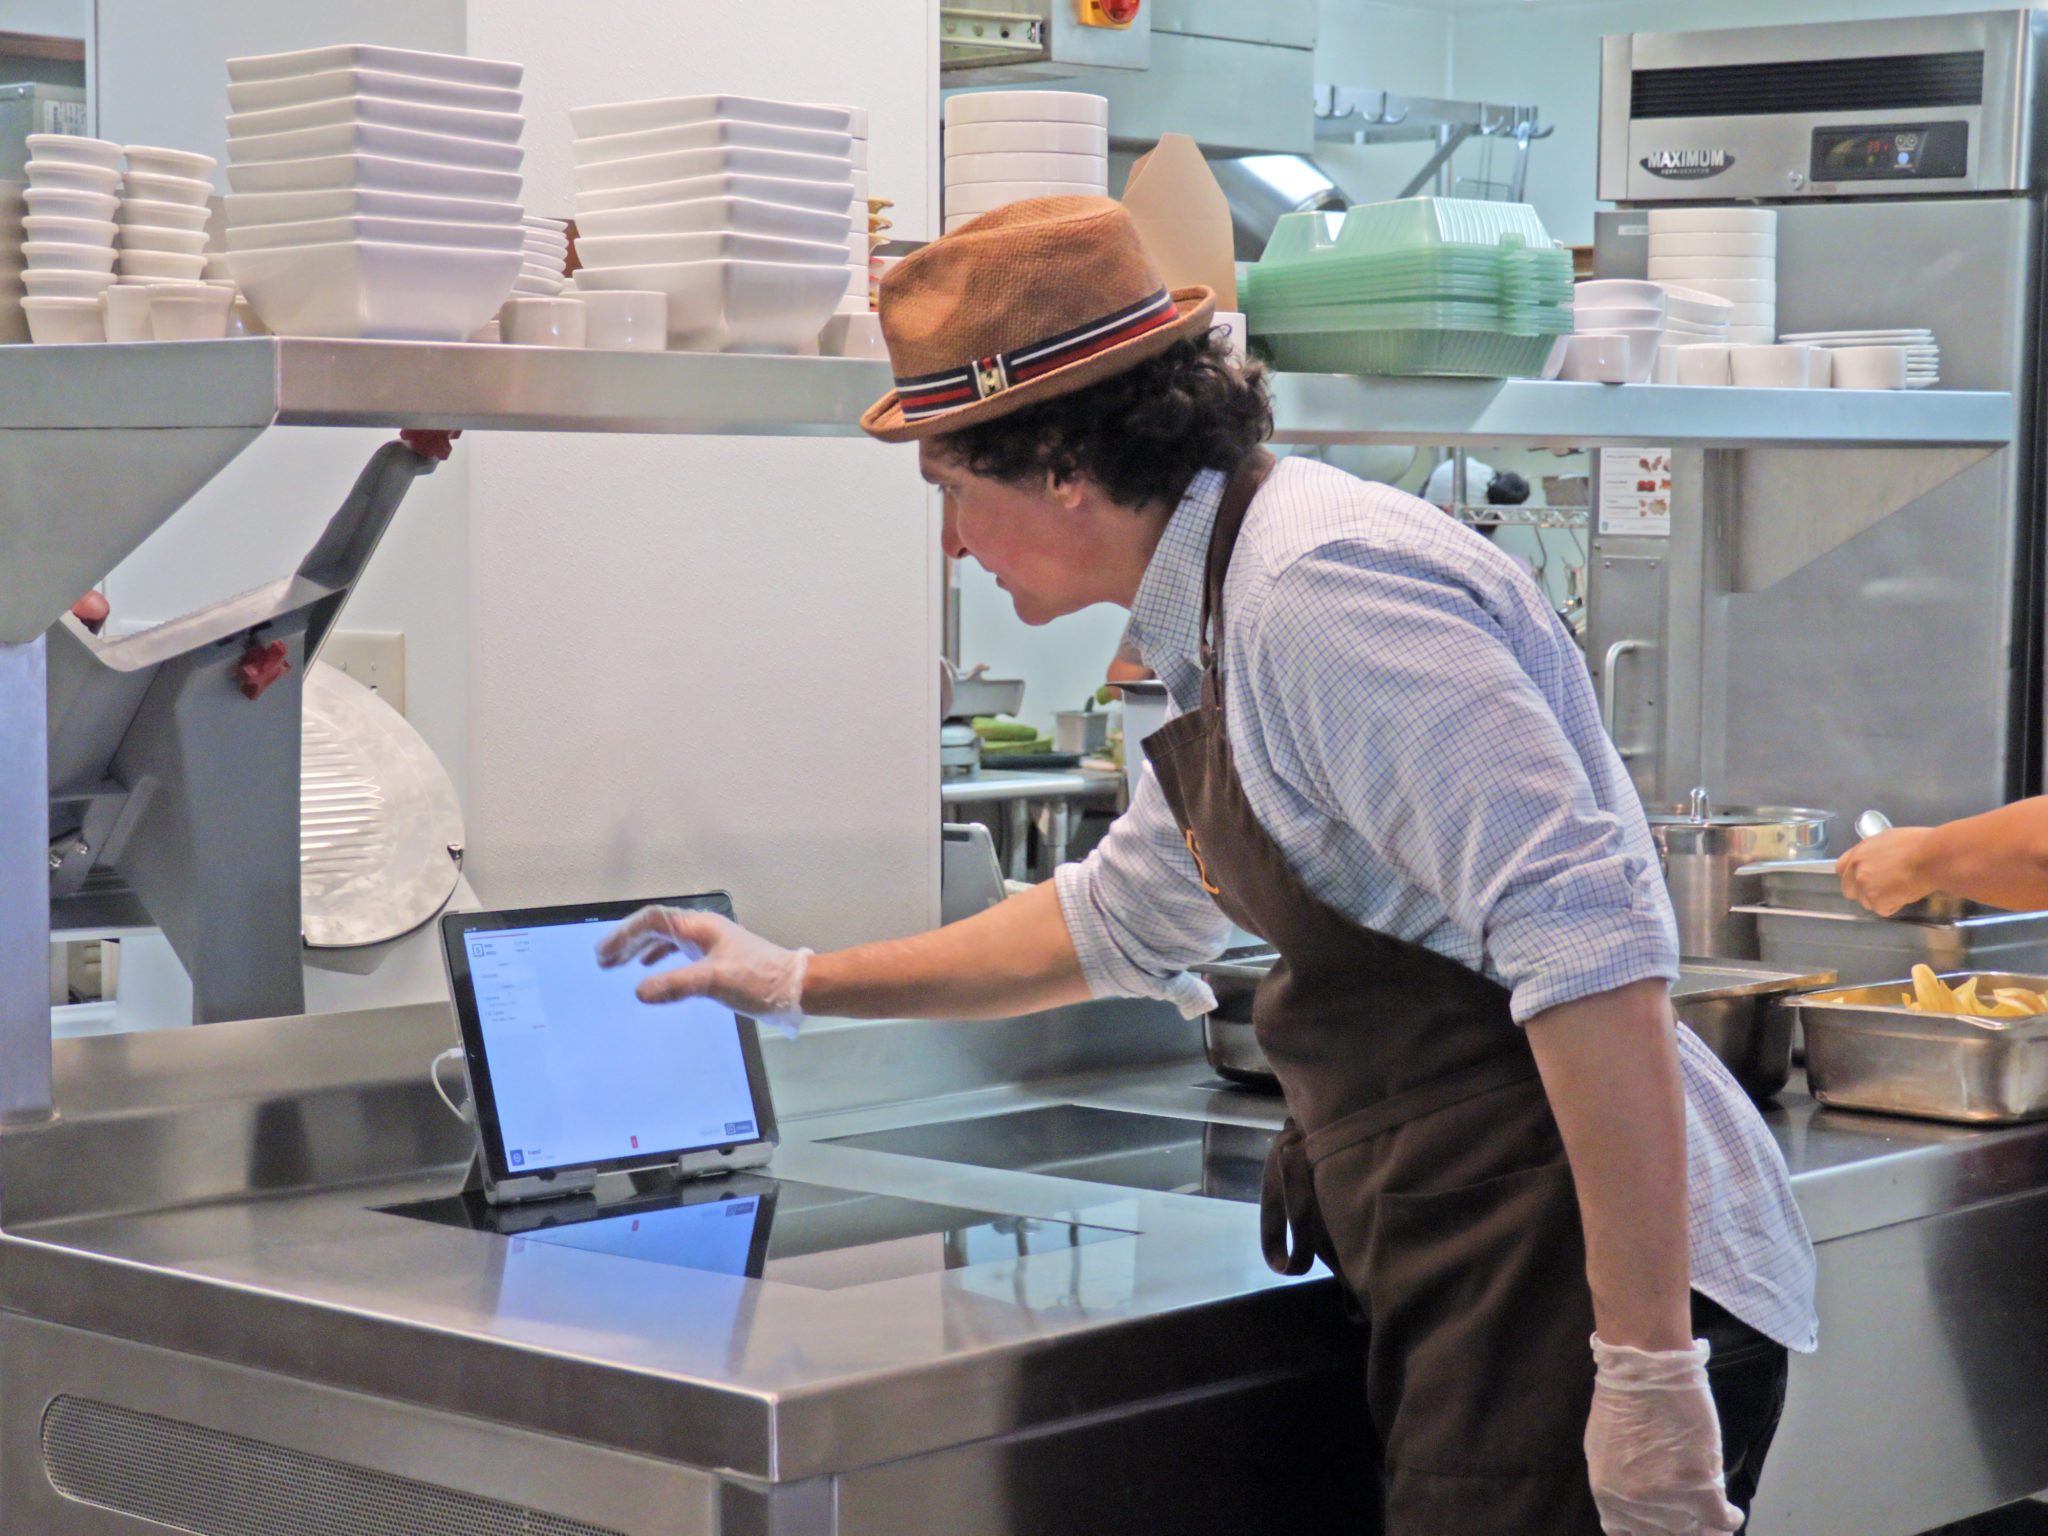 Kitchen Display System With Touch Screen For Restaurants